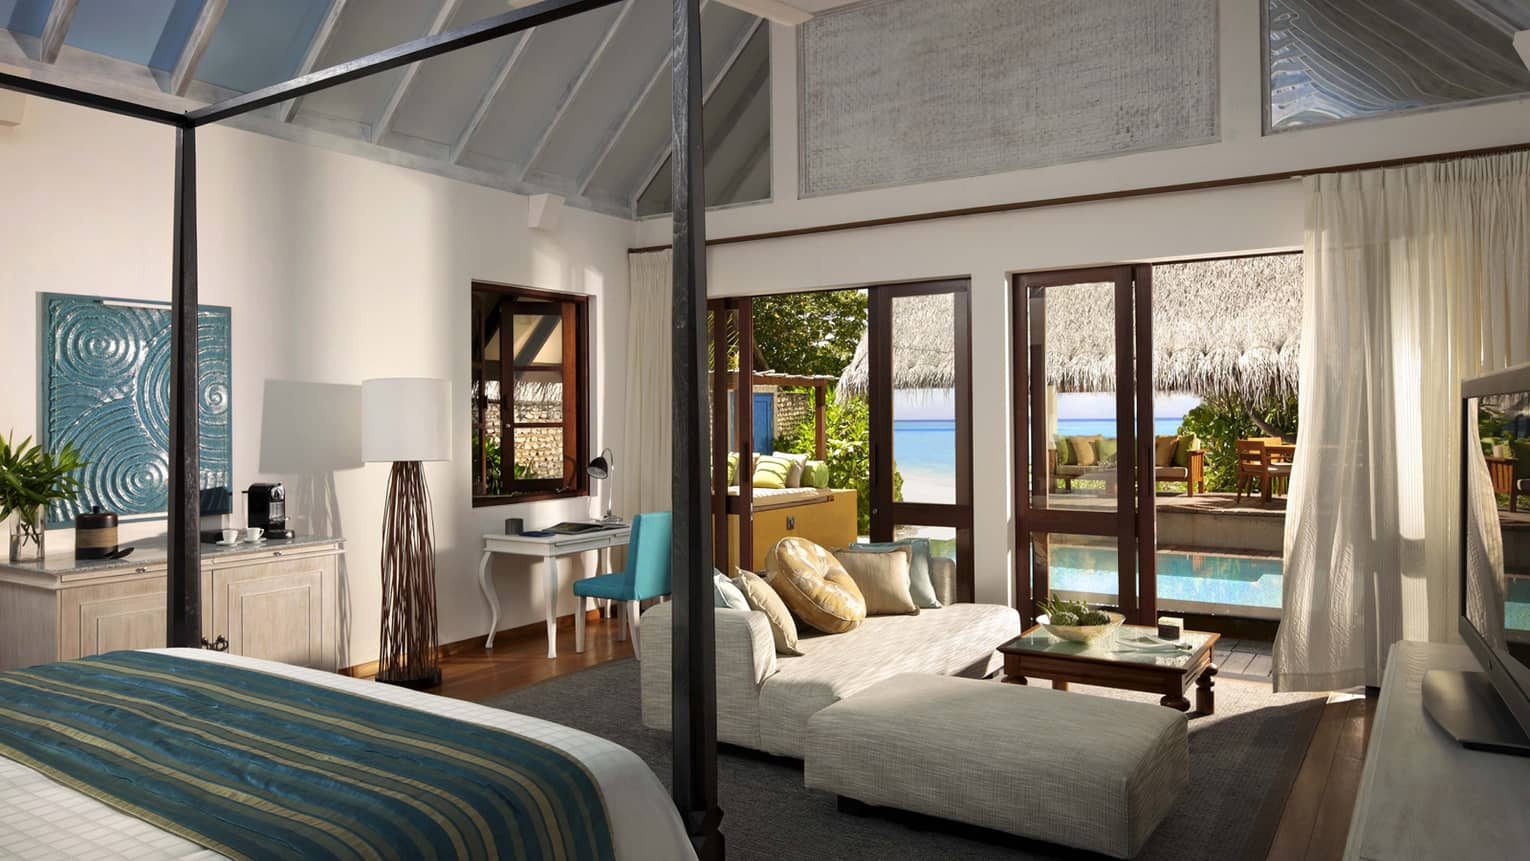 Maldives bedroom with lounge area and a look out onto the ocean